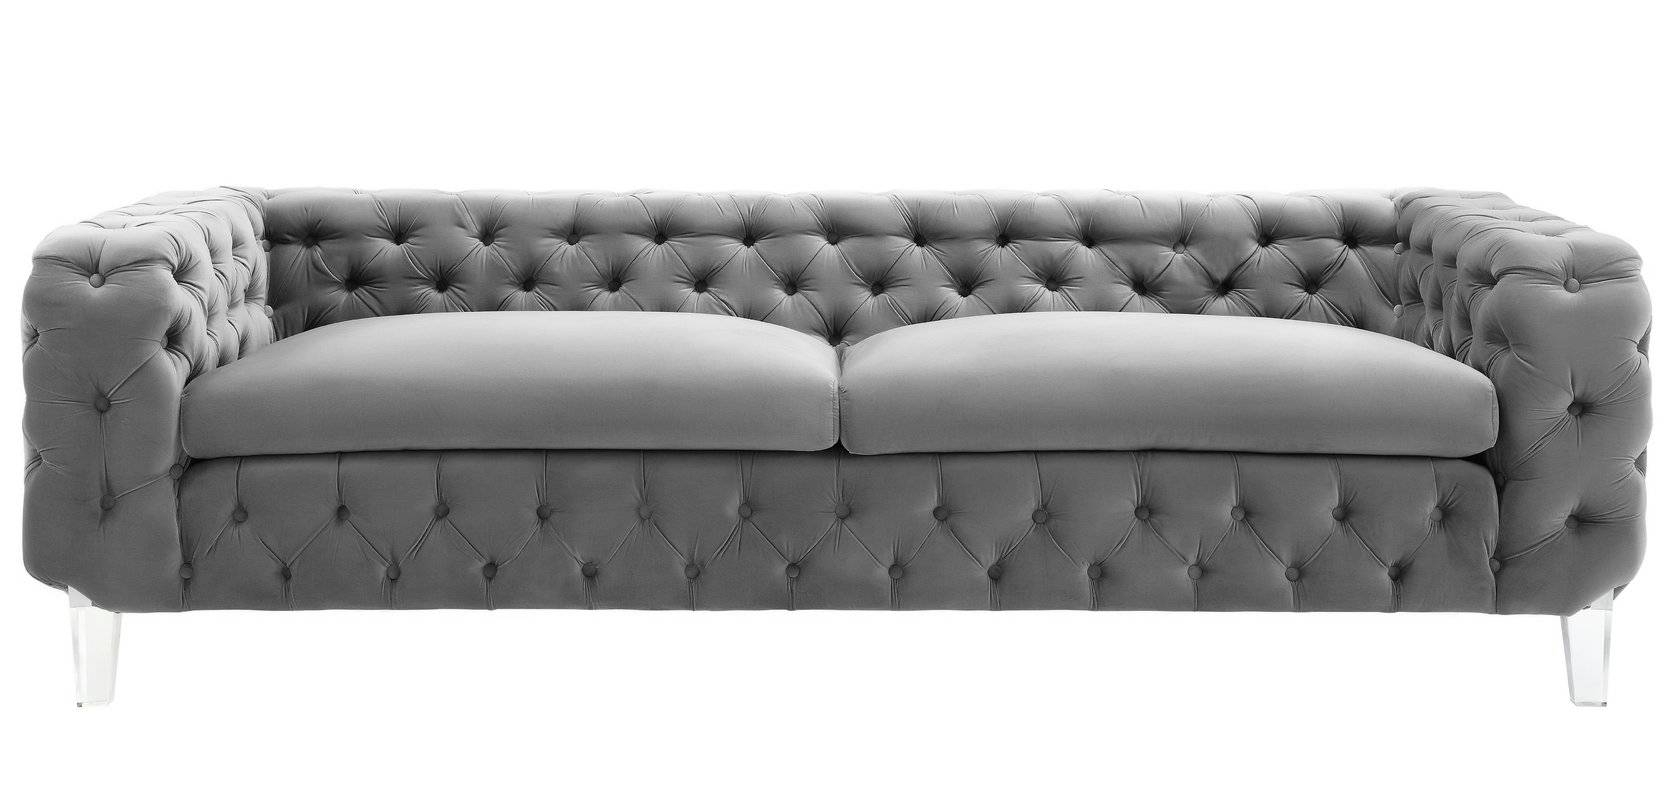 Willa Arlo Interiors Cecília Velvet Upholstery Chesterfield Sofa inside Chesterfield Furniture (Image 28 of 30)